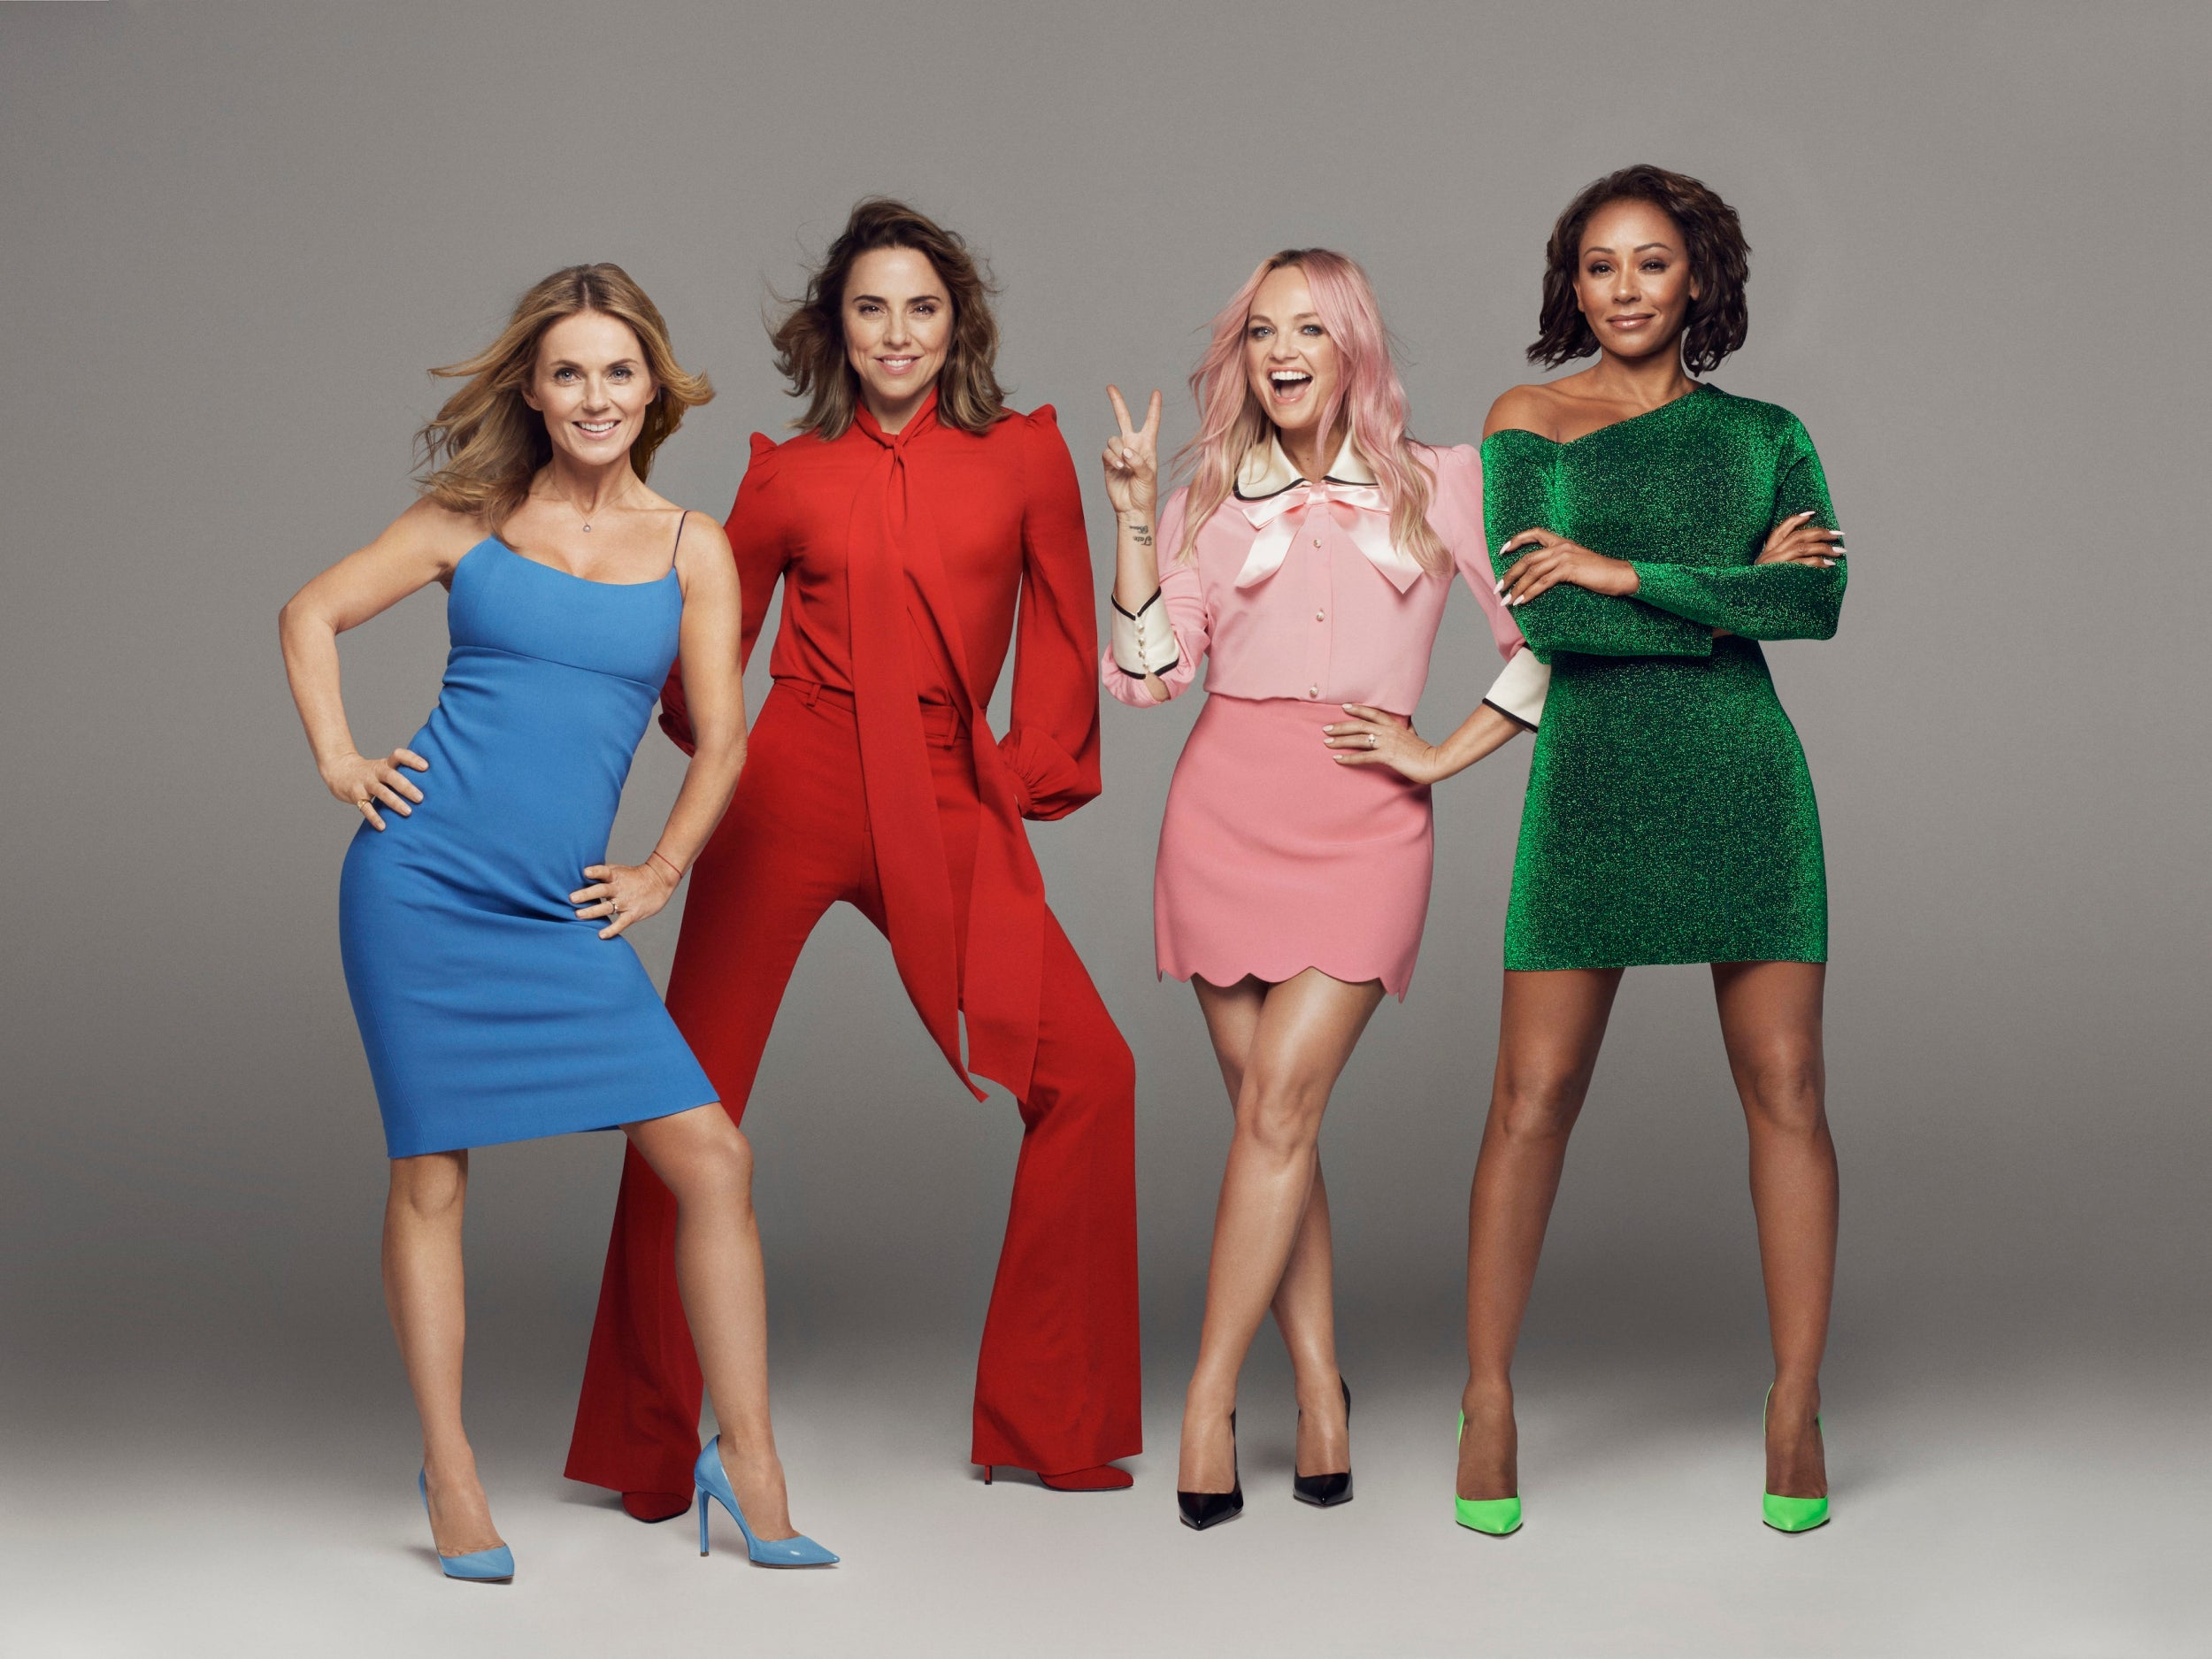 Spice Girls style Get the look of the iconic 90s girl band